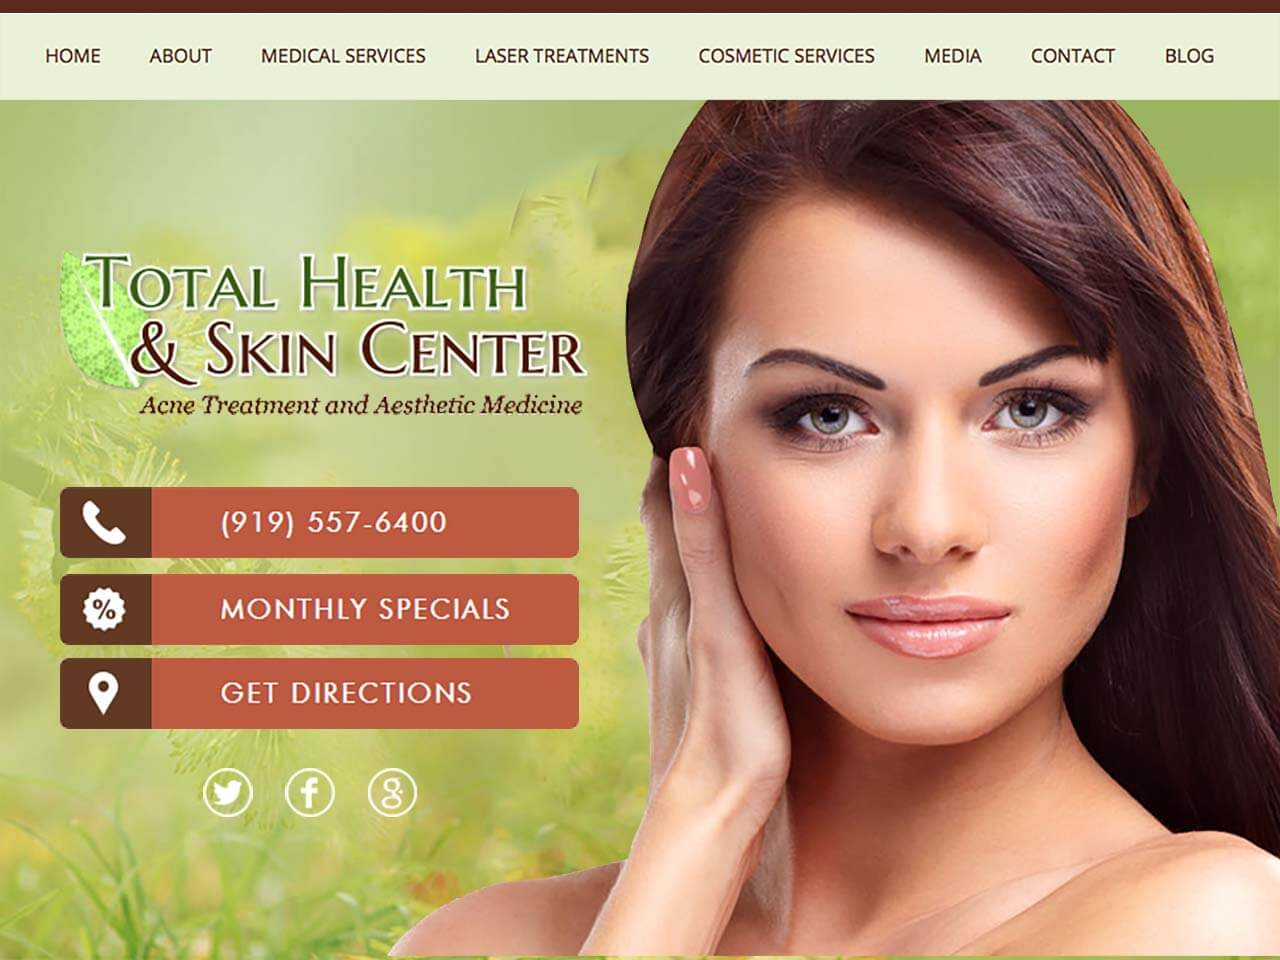 Total Health & Skin Center